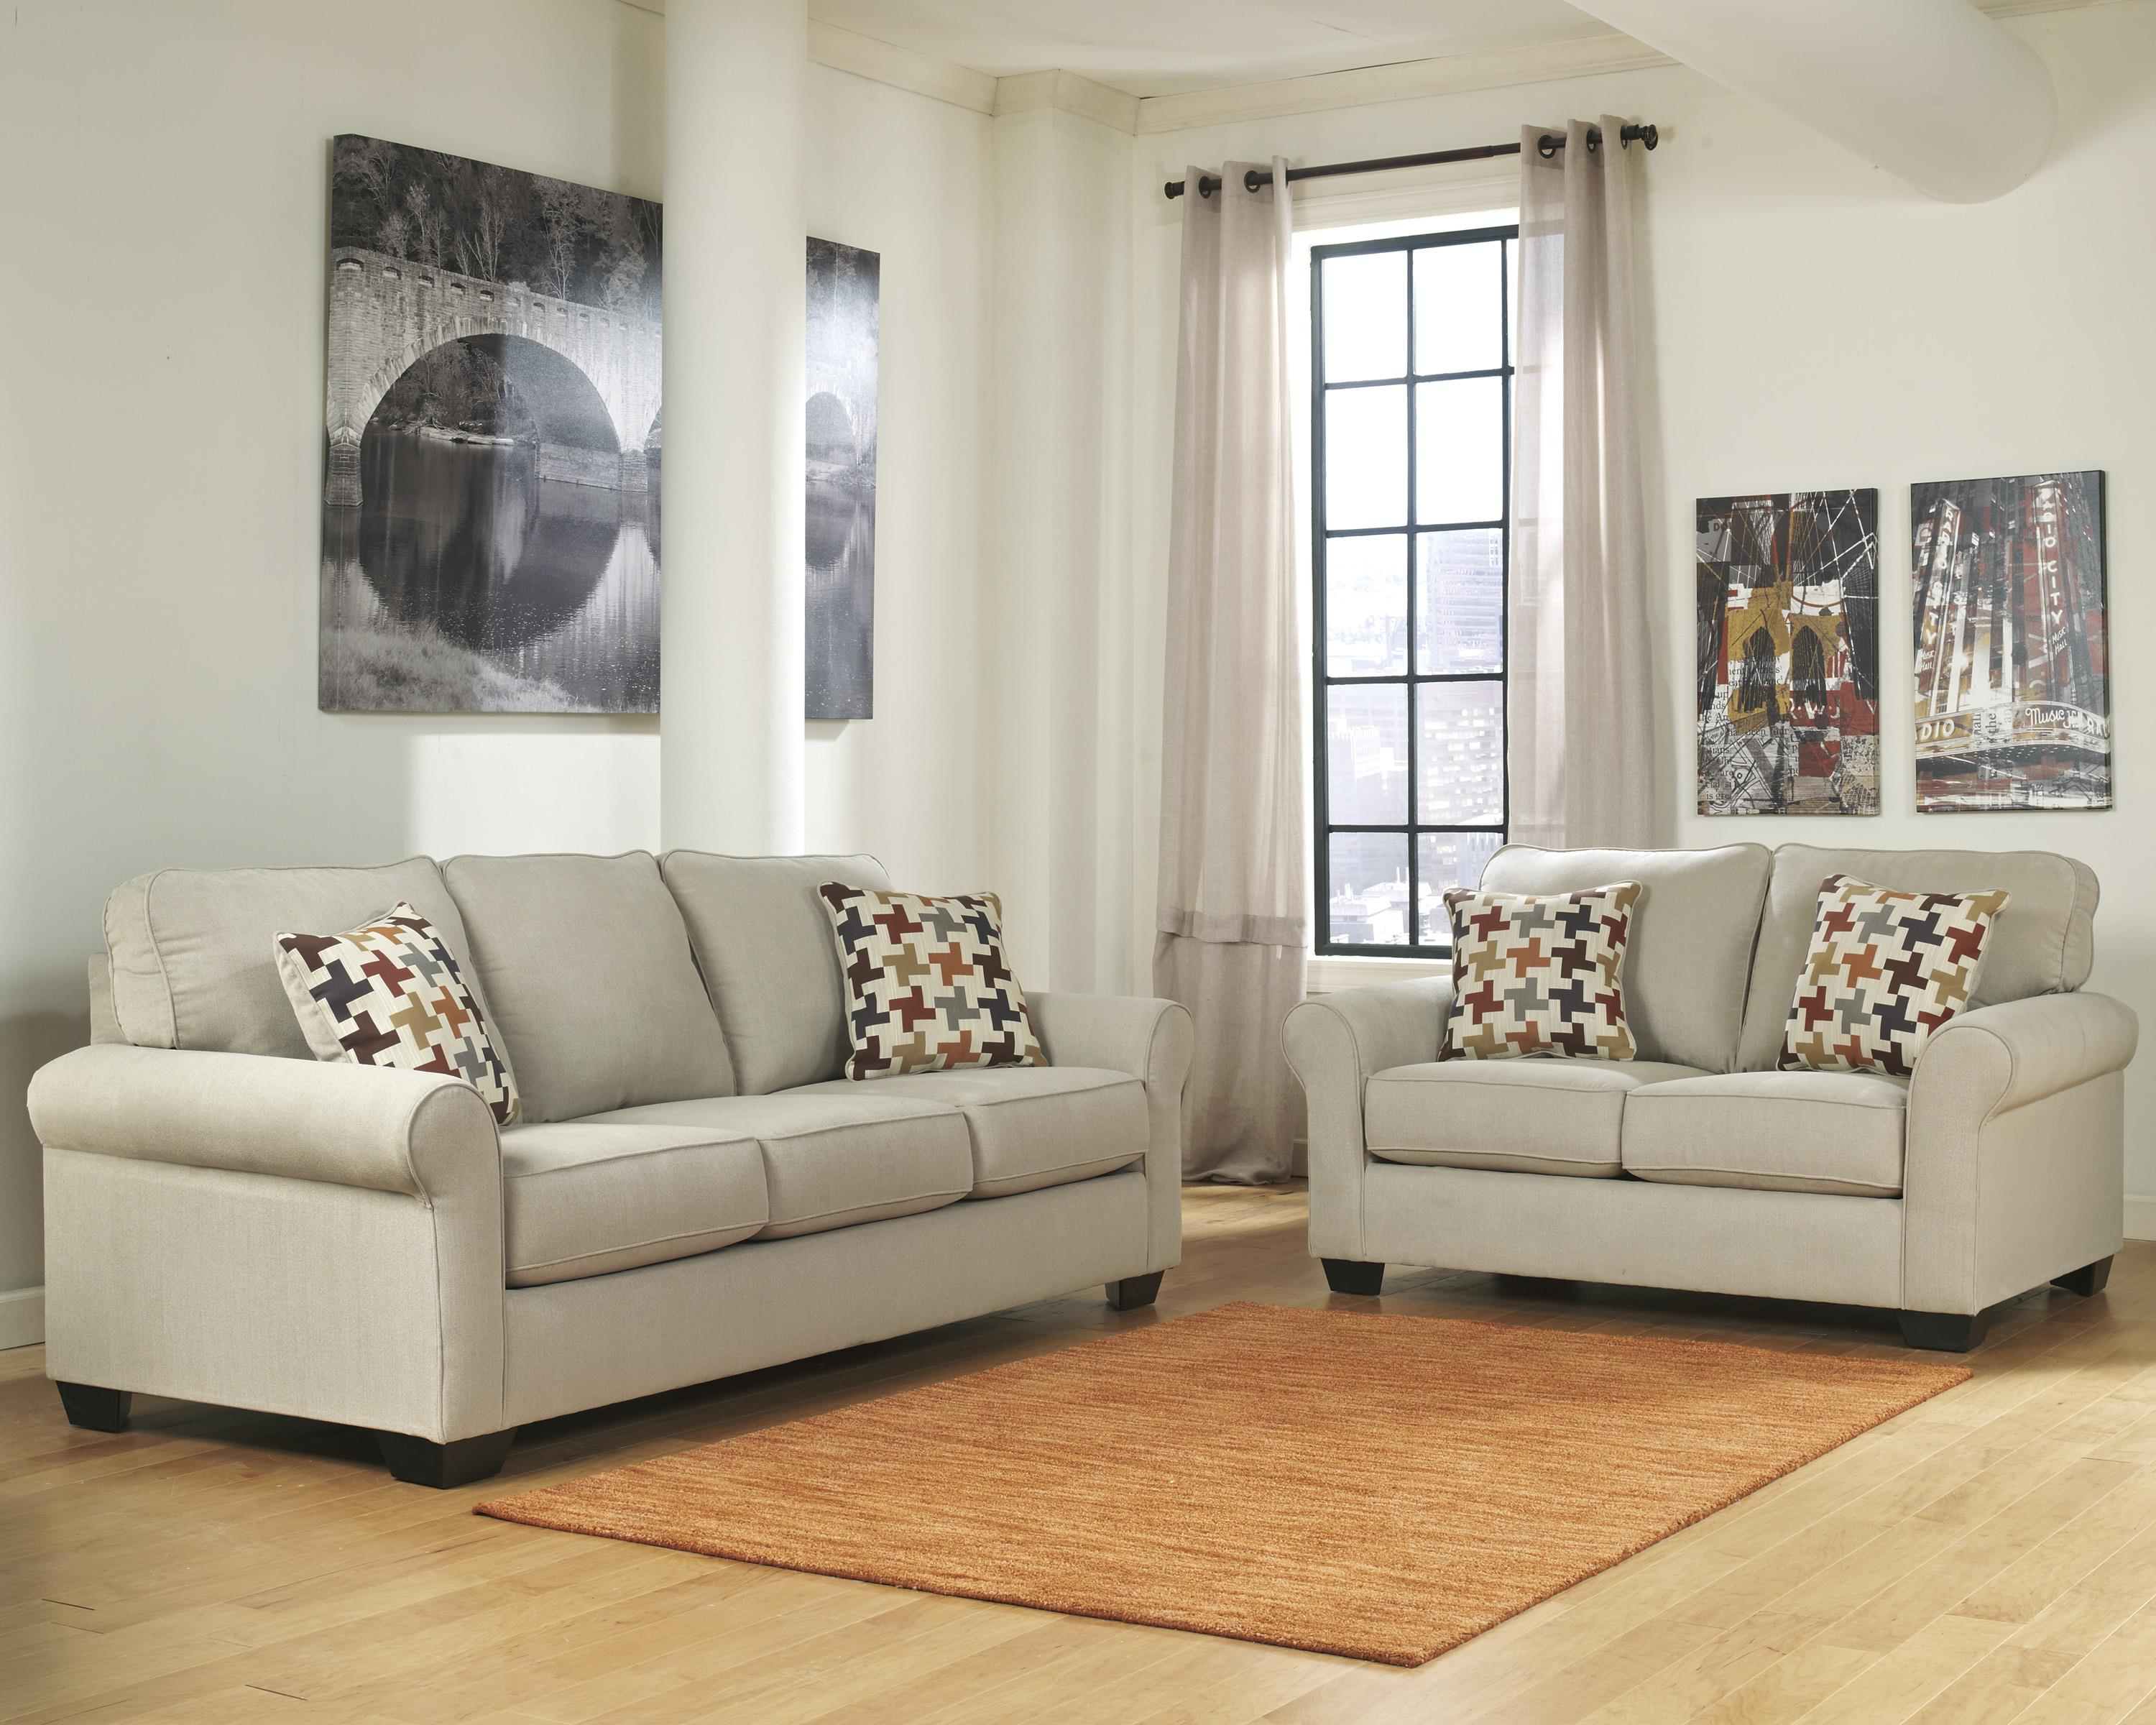 Ashley Furniture Caci Stationary Living Room Group - Item Number: 88202 Living Room Group 1